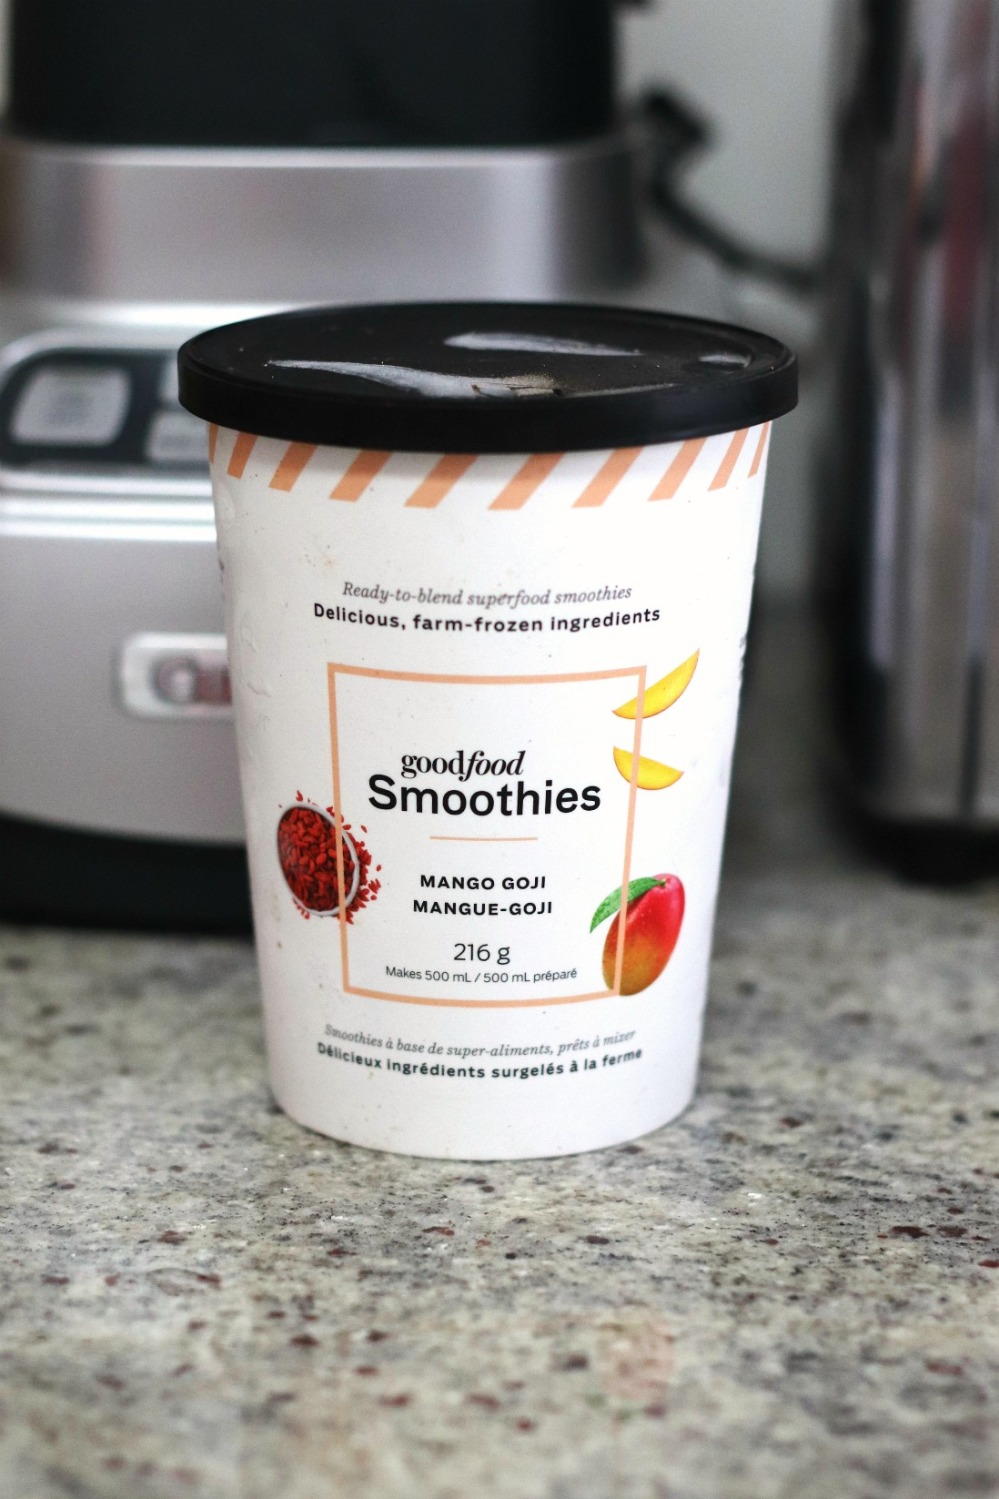 Goodfood Smoothies Mango Goji in container